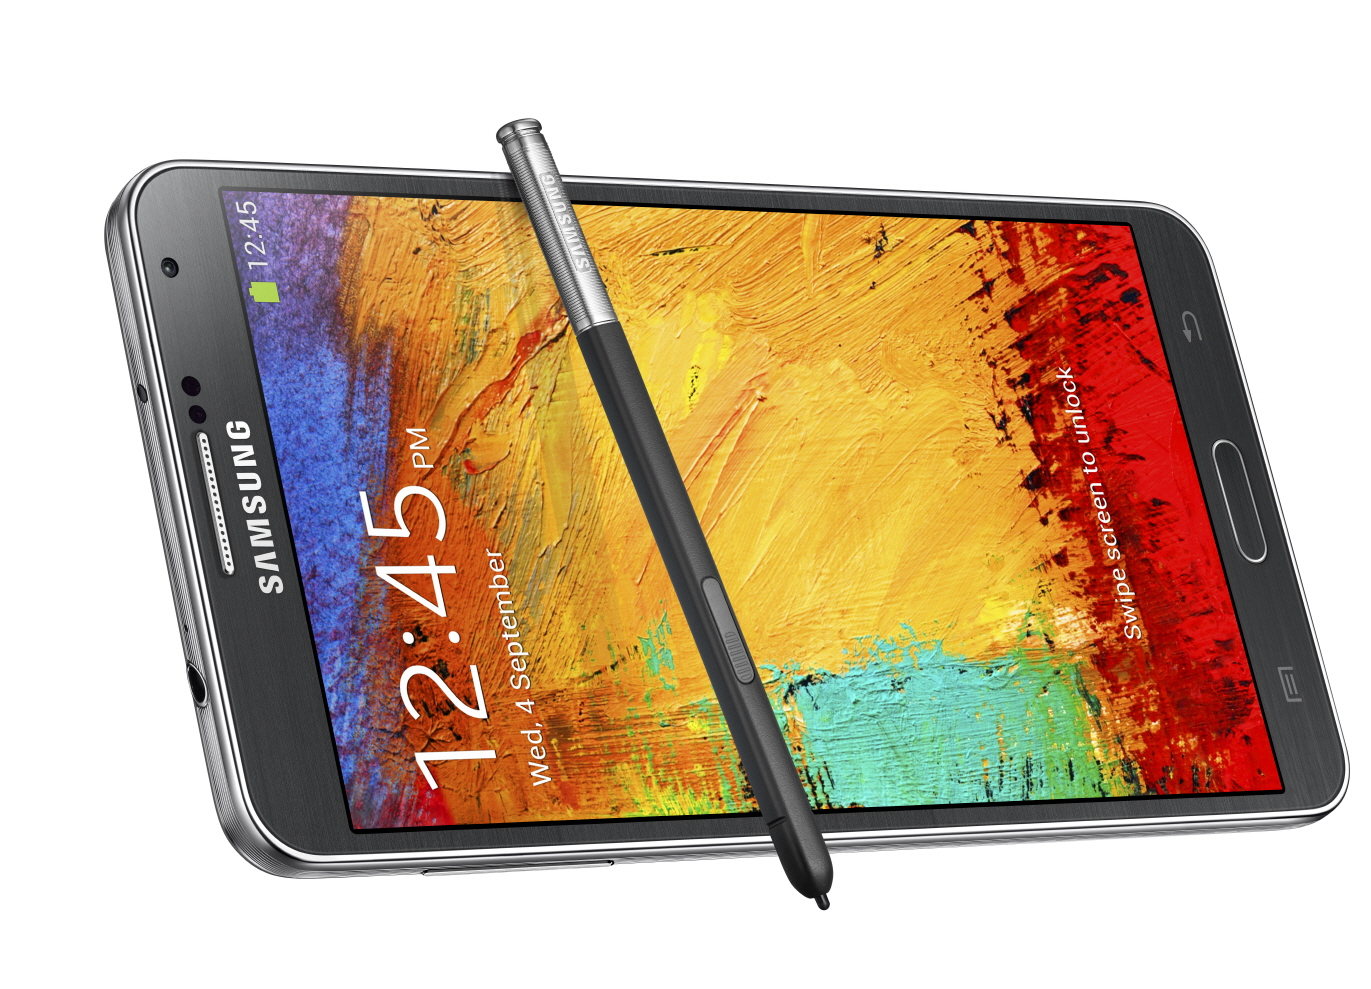 http://pdadb.net/img/gallery/big/samsung_galaxy_note_3_025_front_dynamic_with_pen2_jet_black.jpg